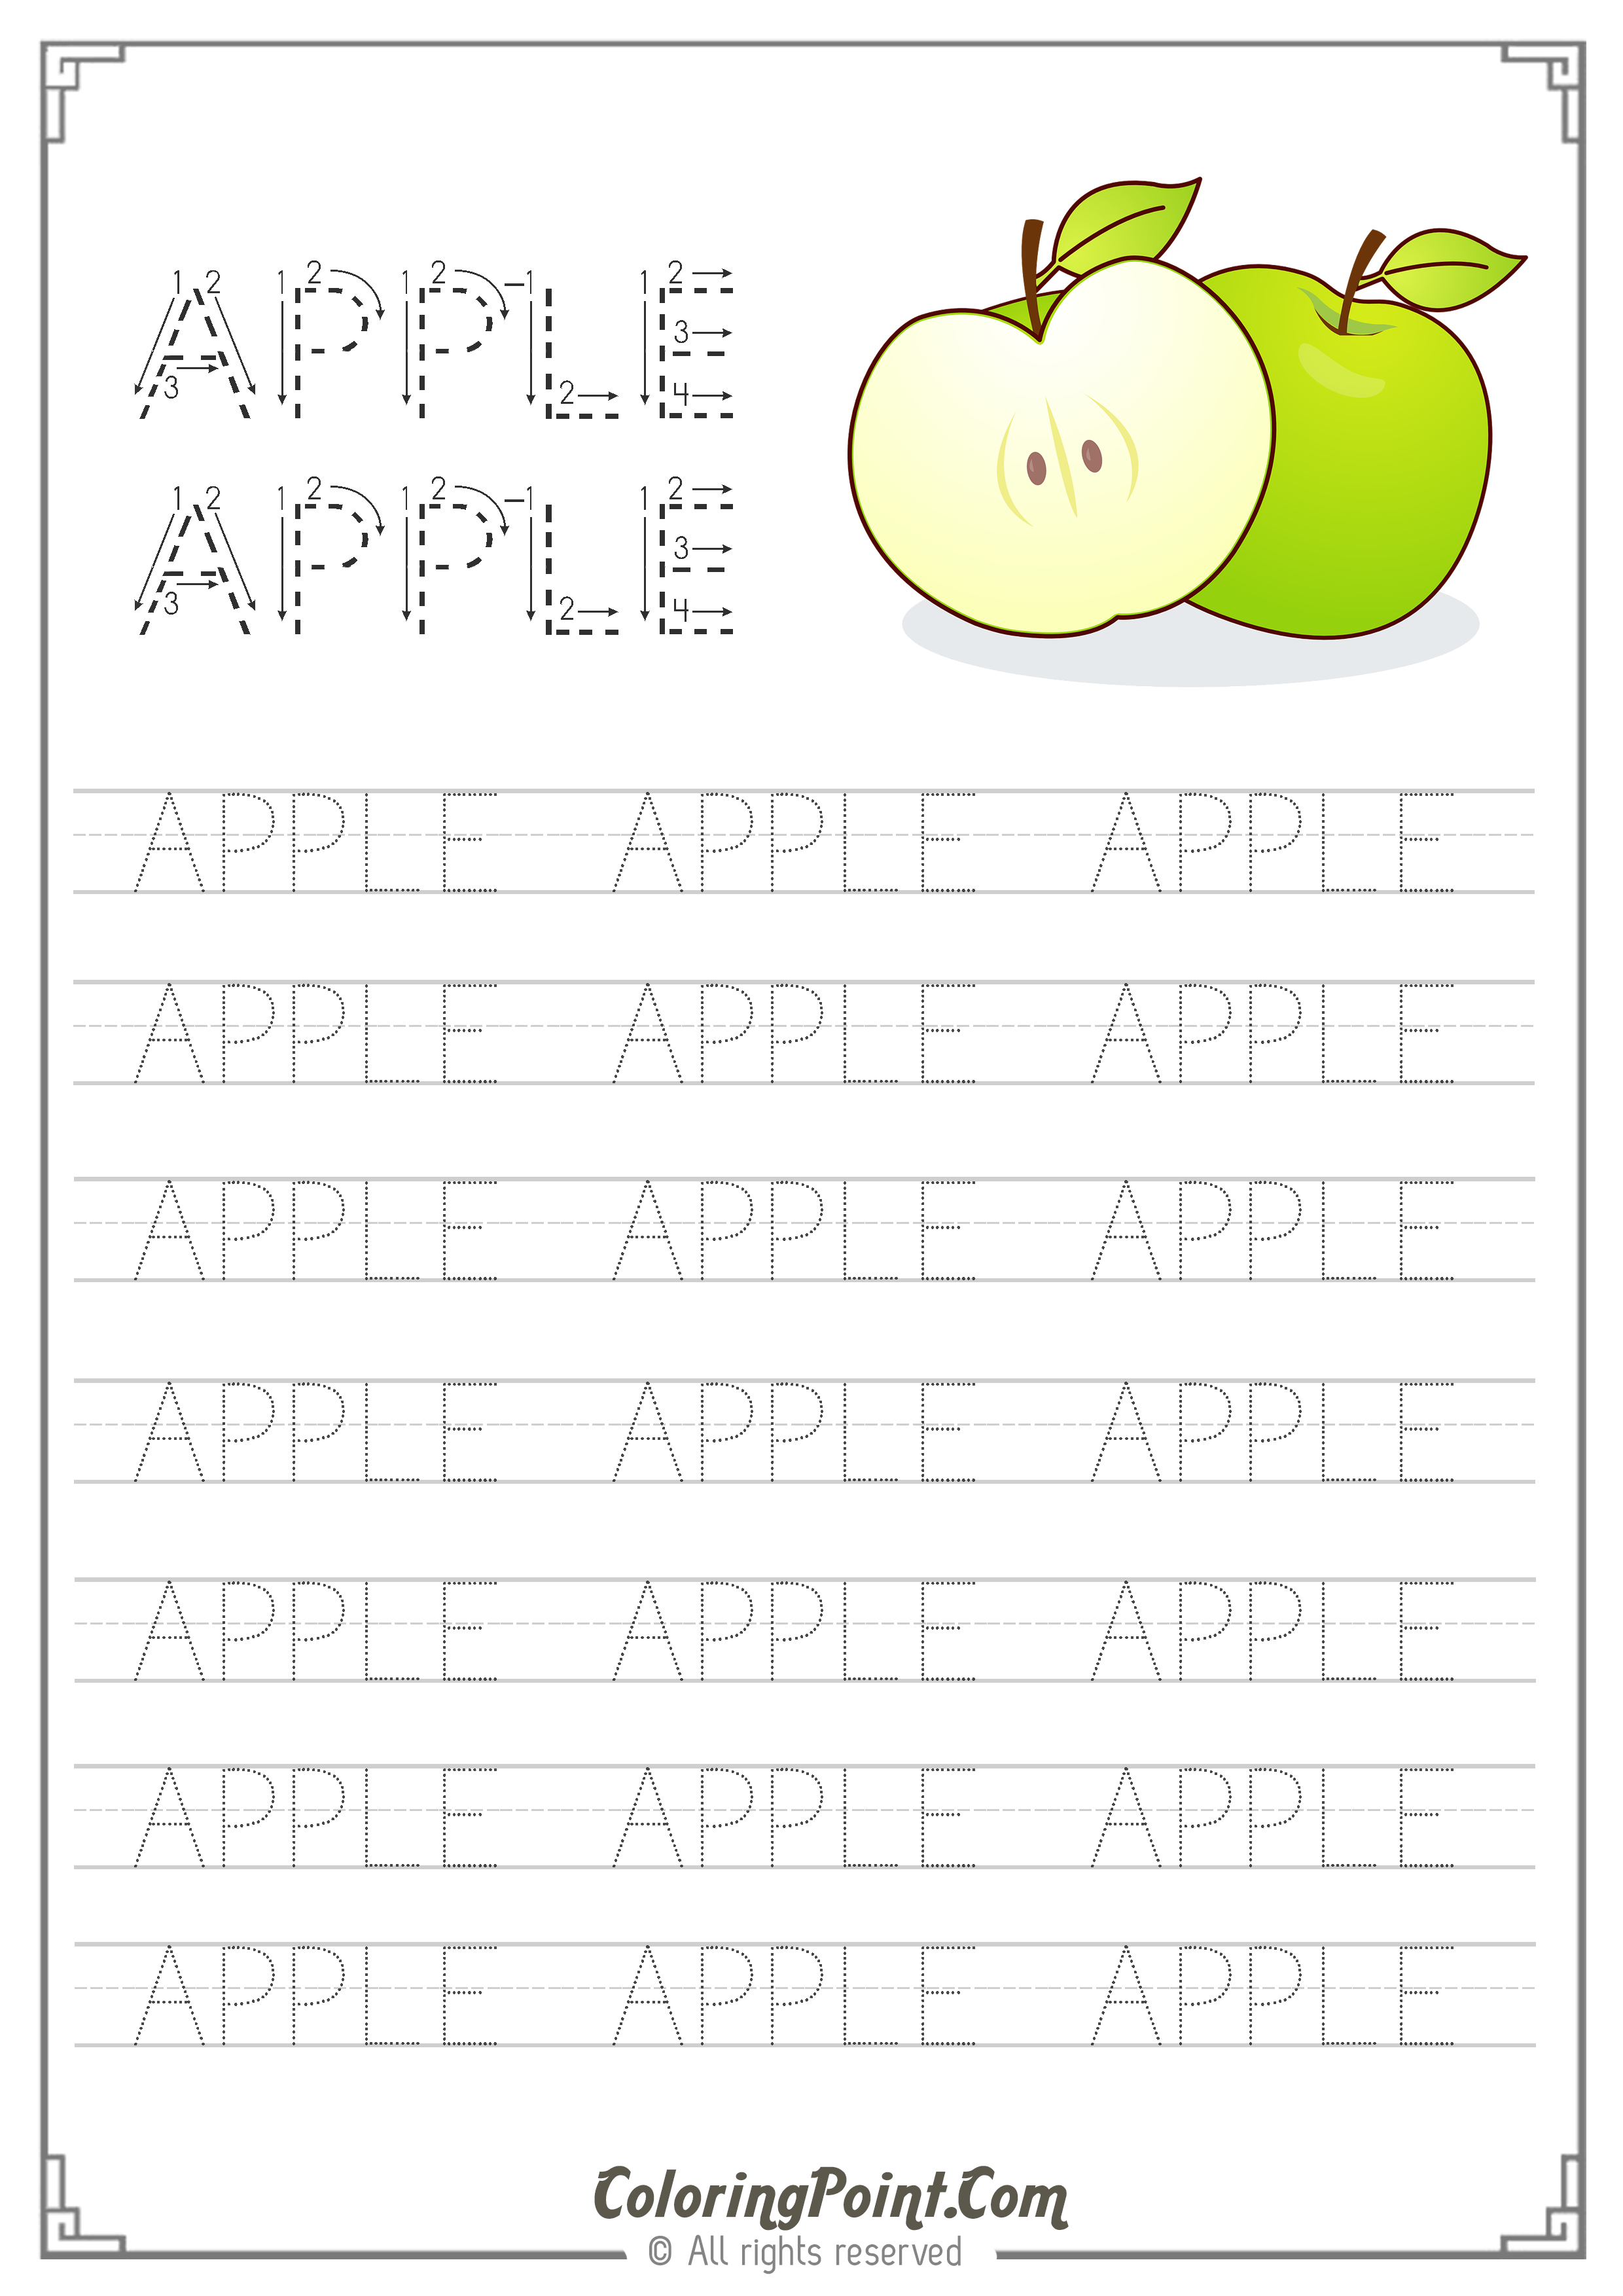 Free Printable Worksheets Ready To Print A4 Paper Size. Perfect For - Free Printable Name Tracing